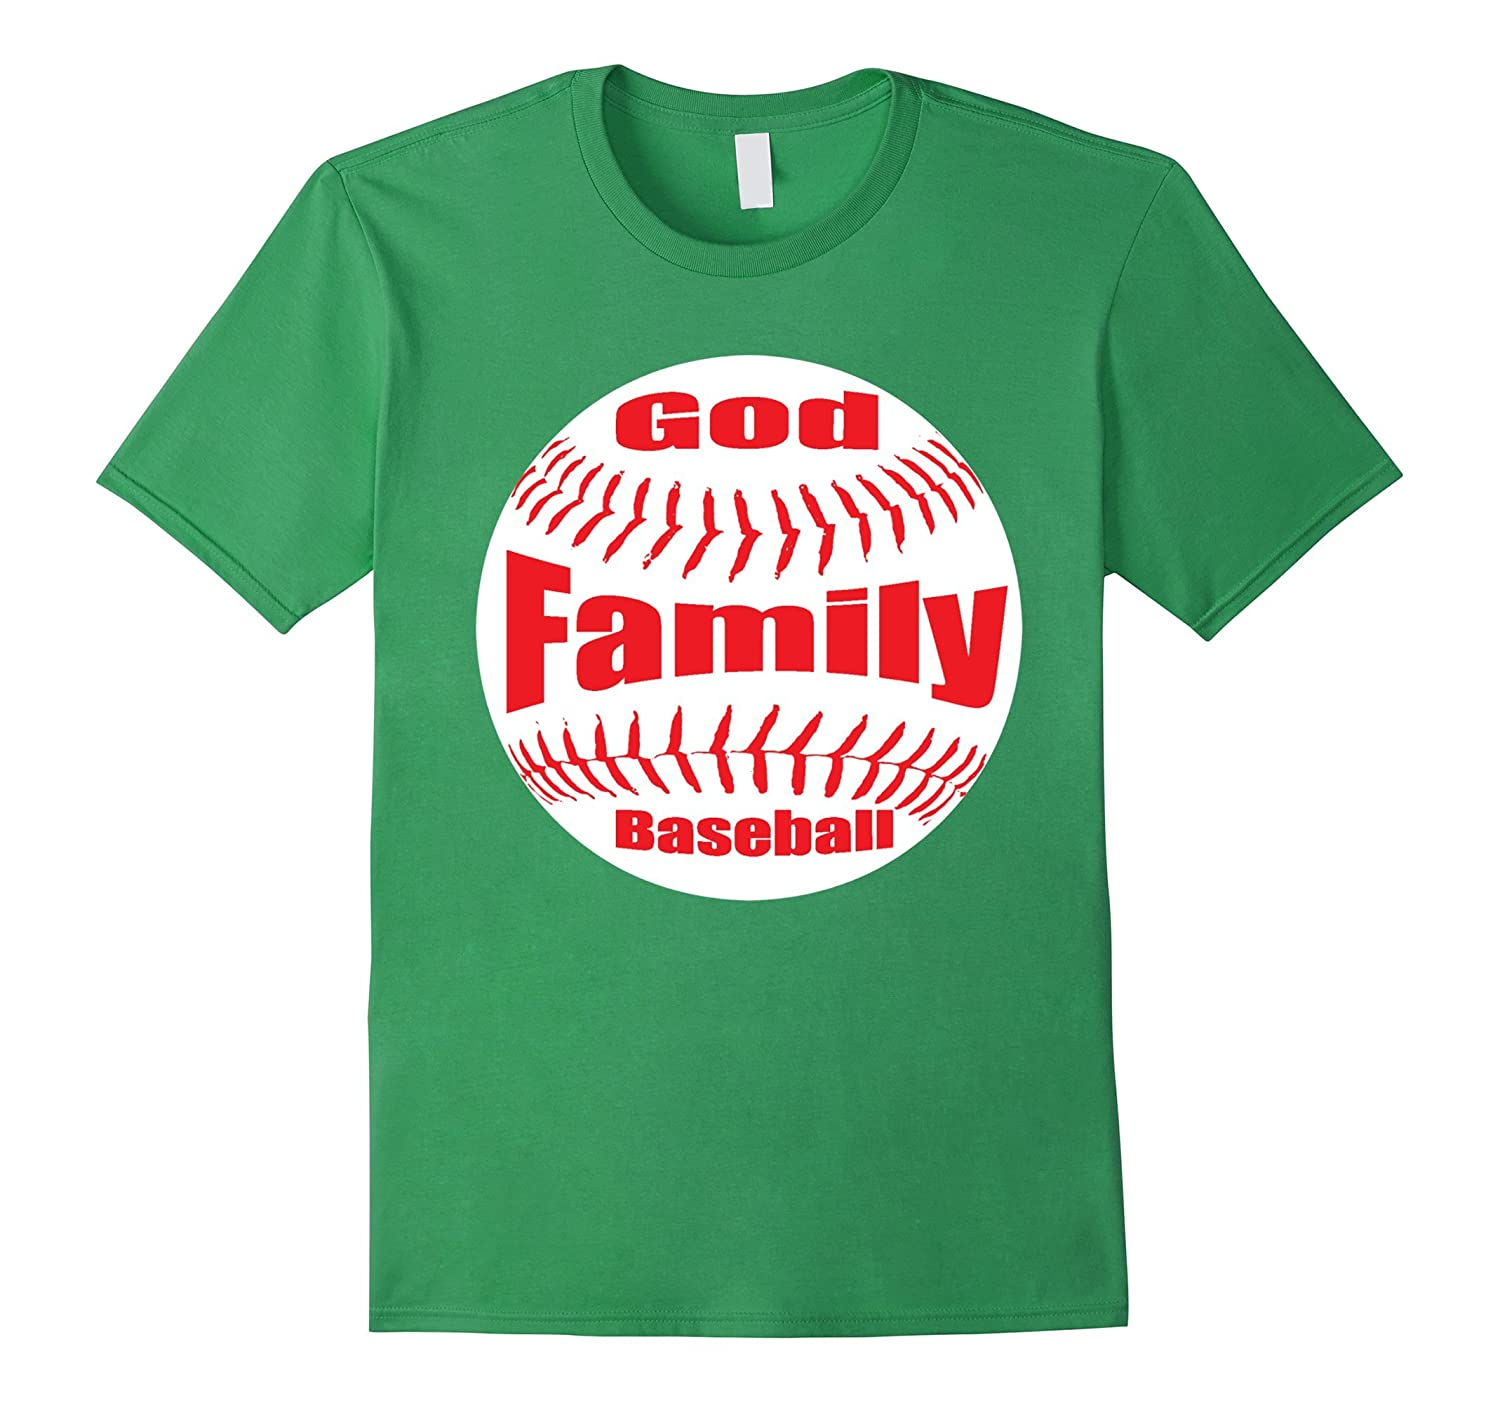 Christian Baseball TShirt (God, Family and Baseball)